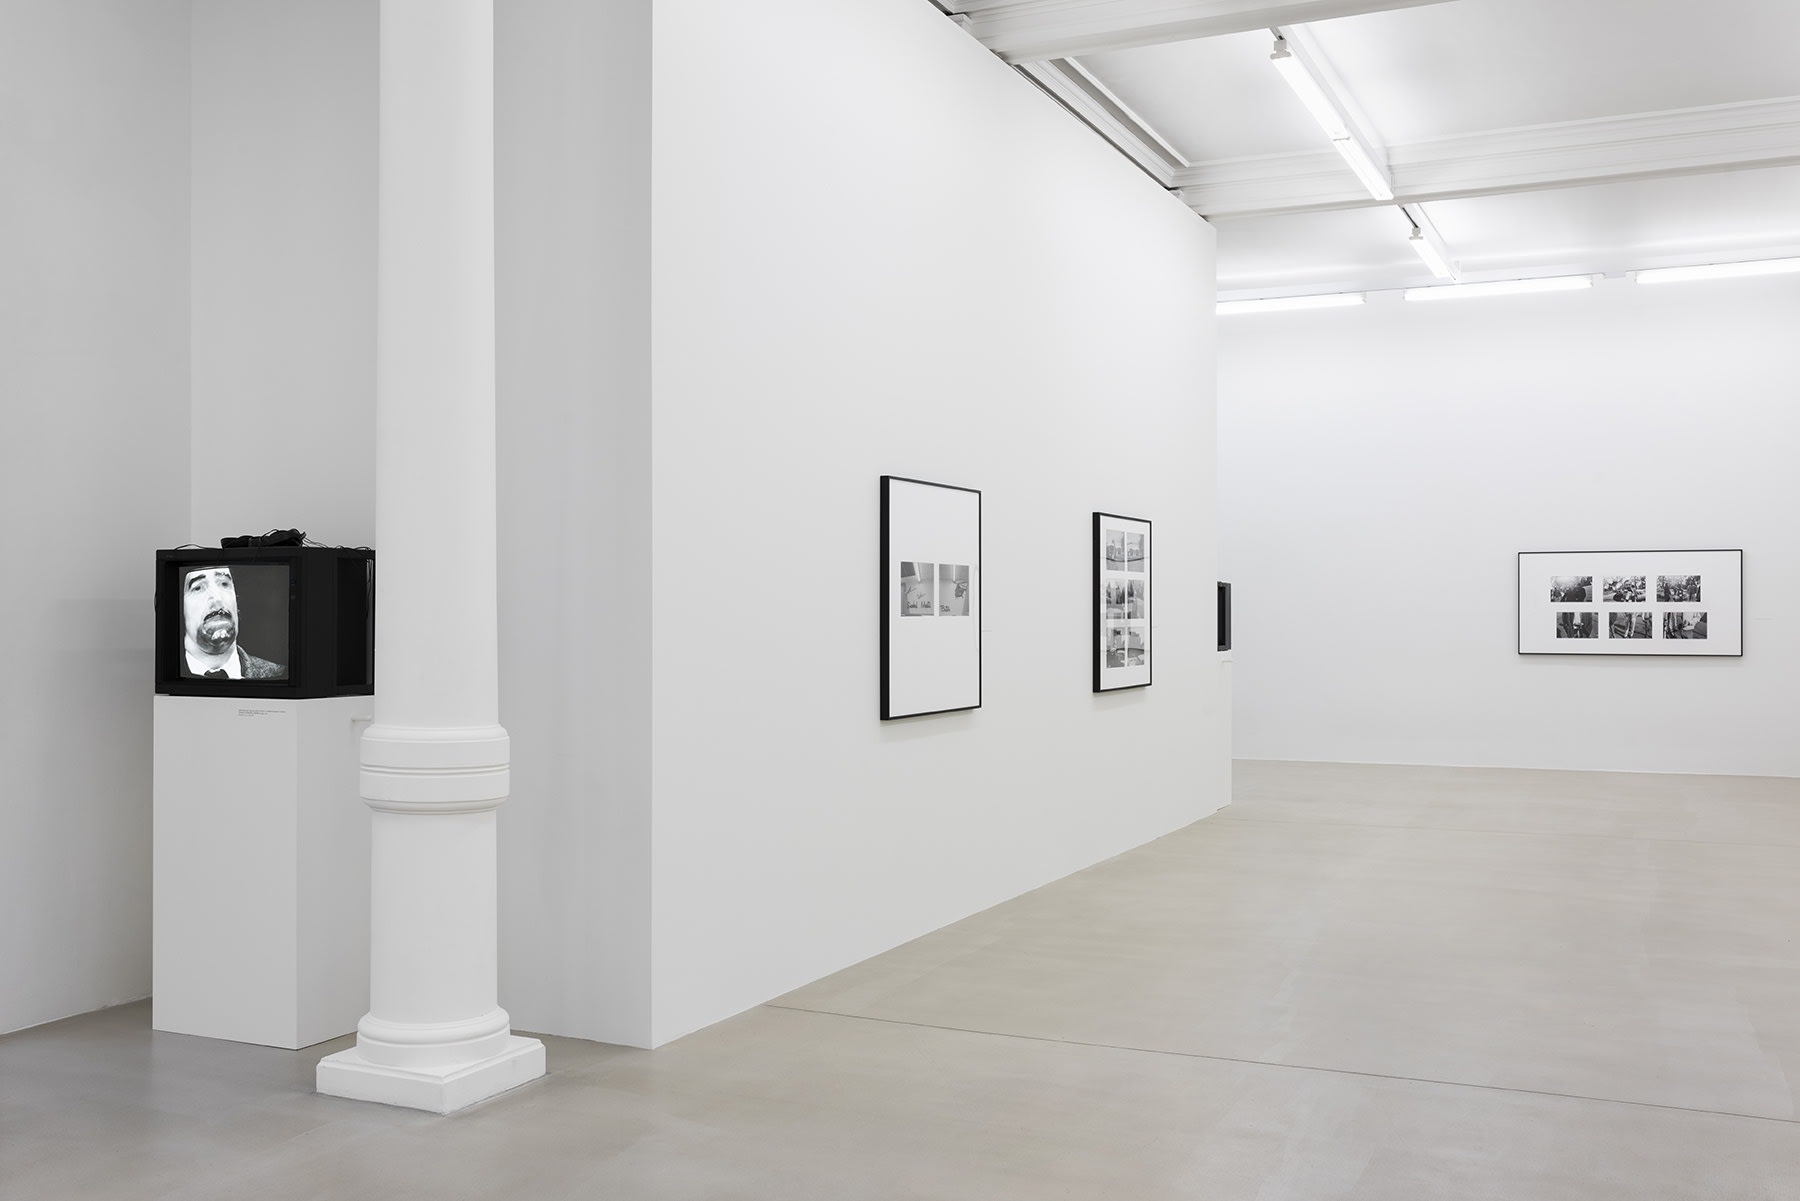 A cathode-ray television displays a man in black and white on a pedestal behind a wall on which 2 frames of black and white photos are hung. This wall is perpendicular to another wall with black and white photos on it.